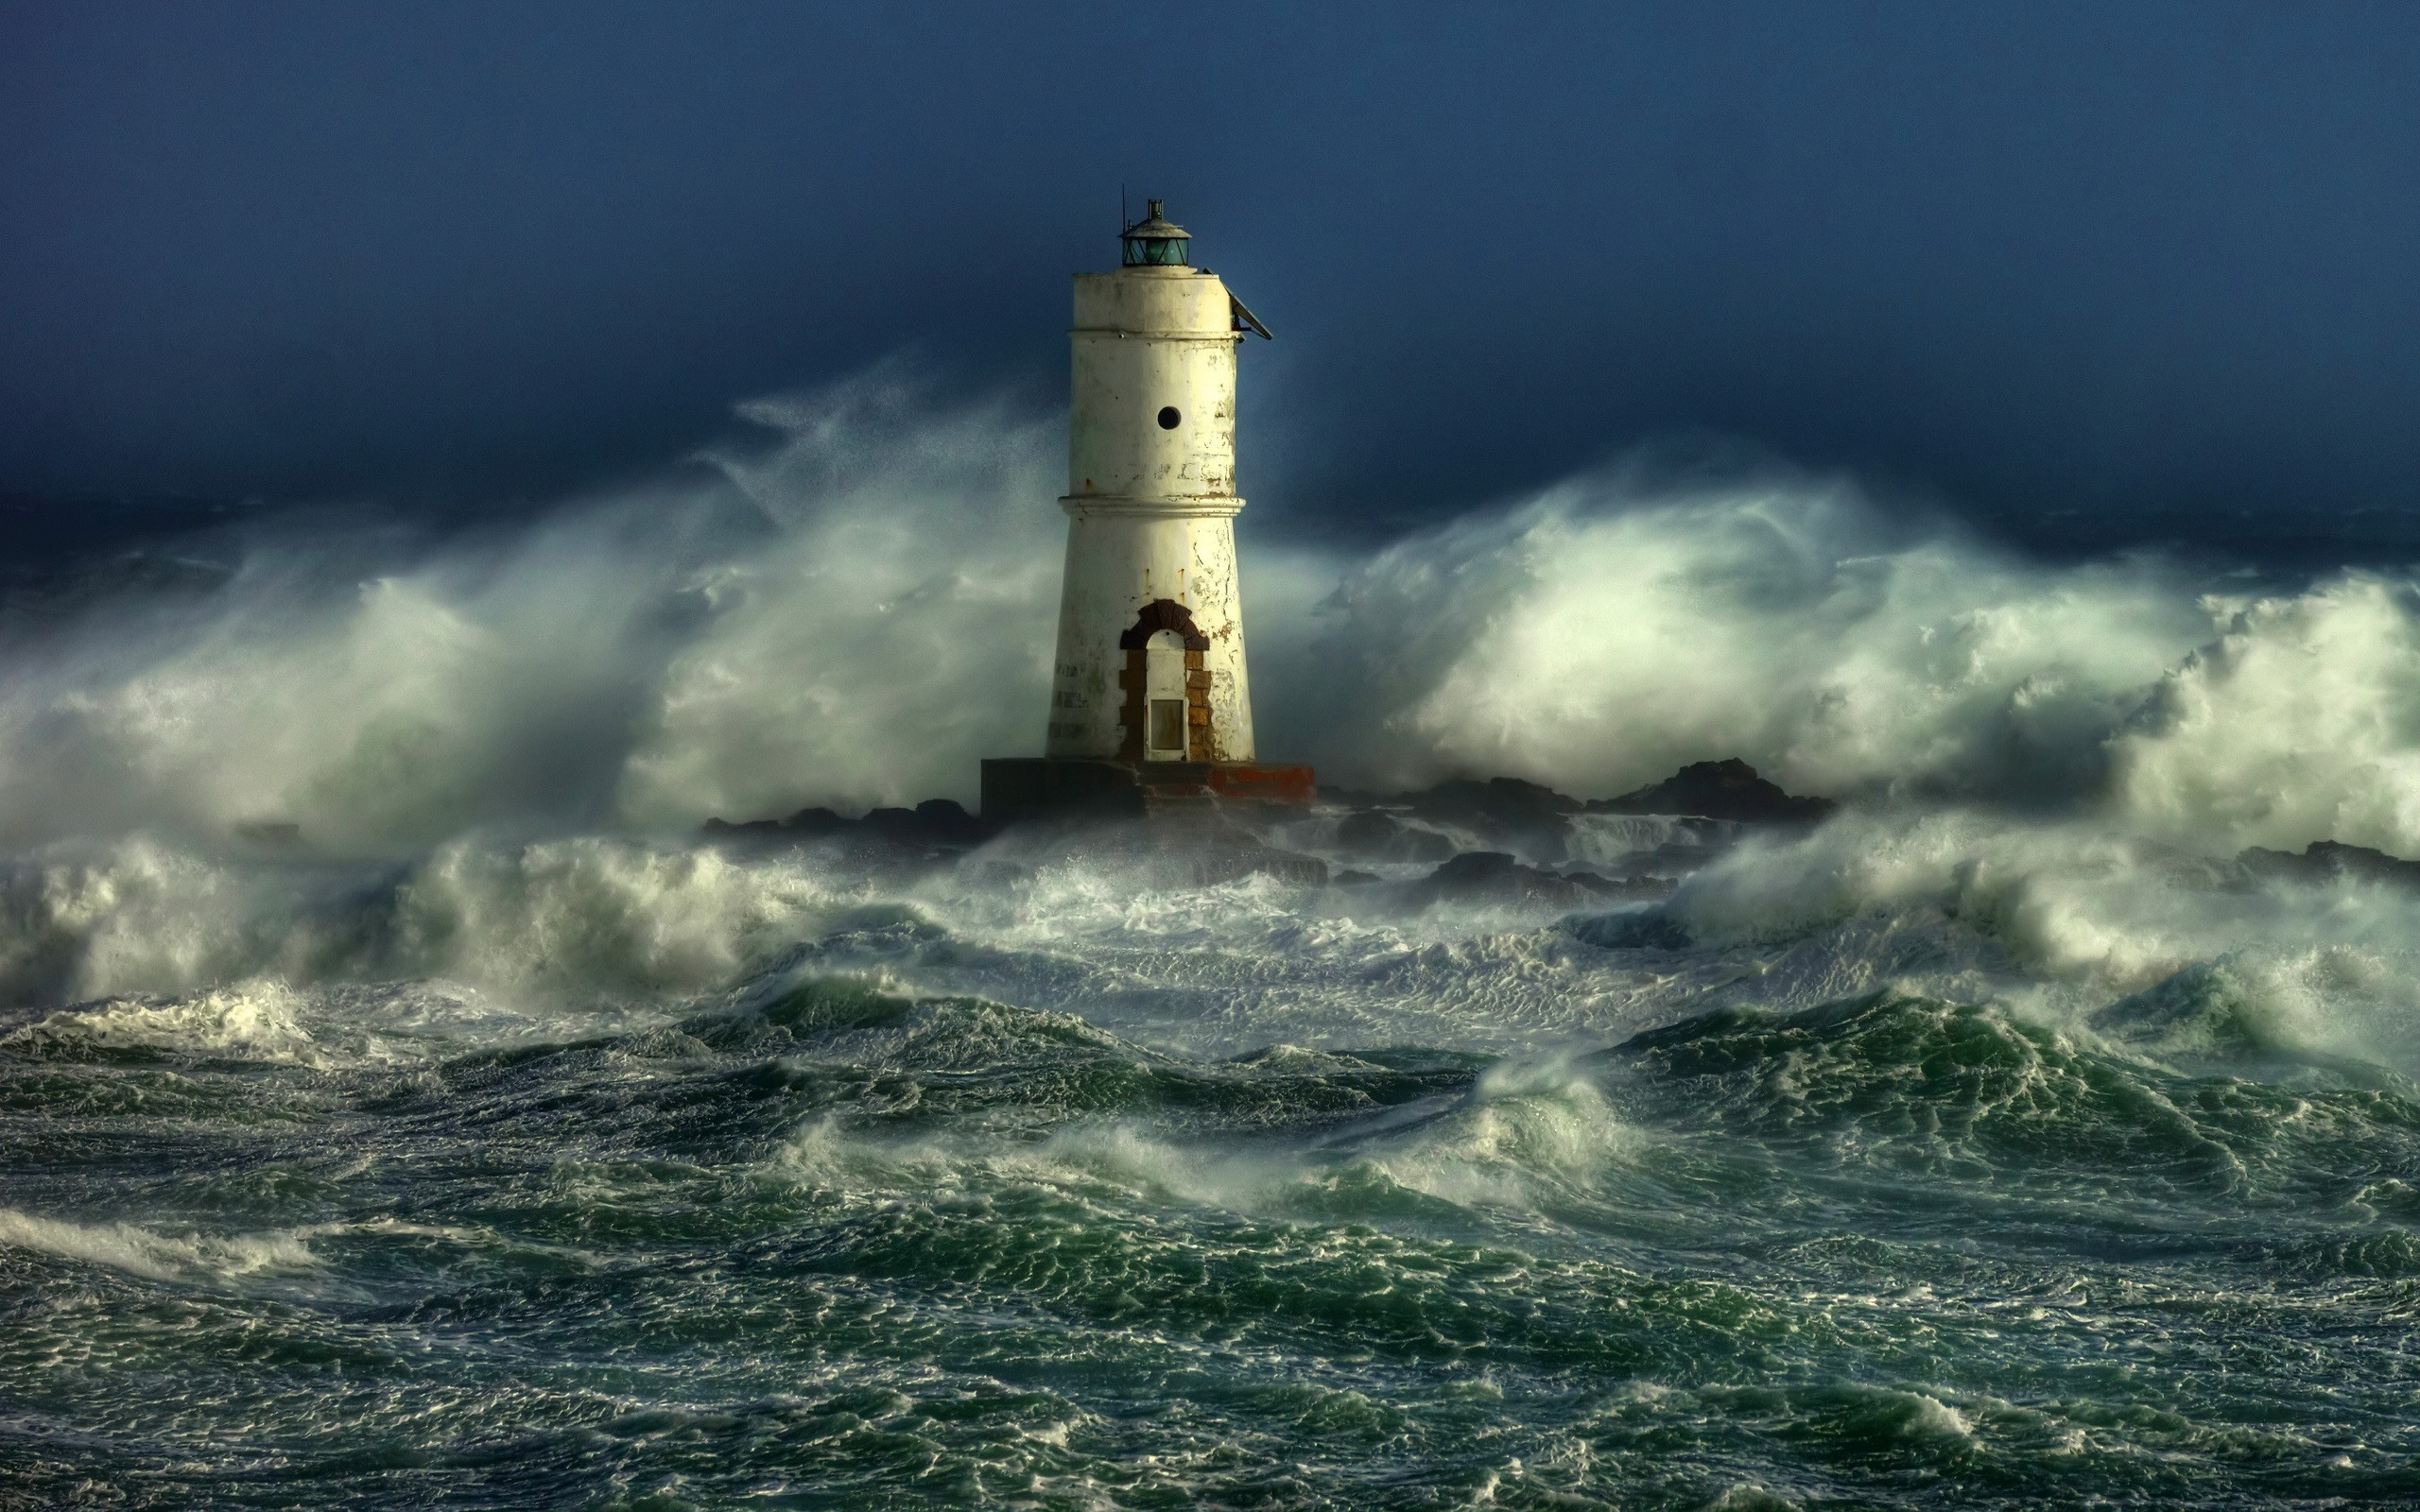 Lighthouse Hd Wallpapers: Lighthouse Wallpapers Screensavers (64+ Images